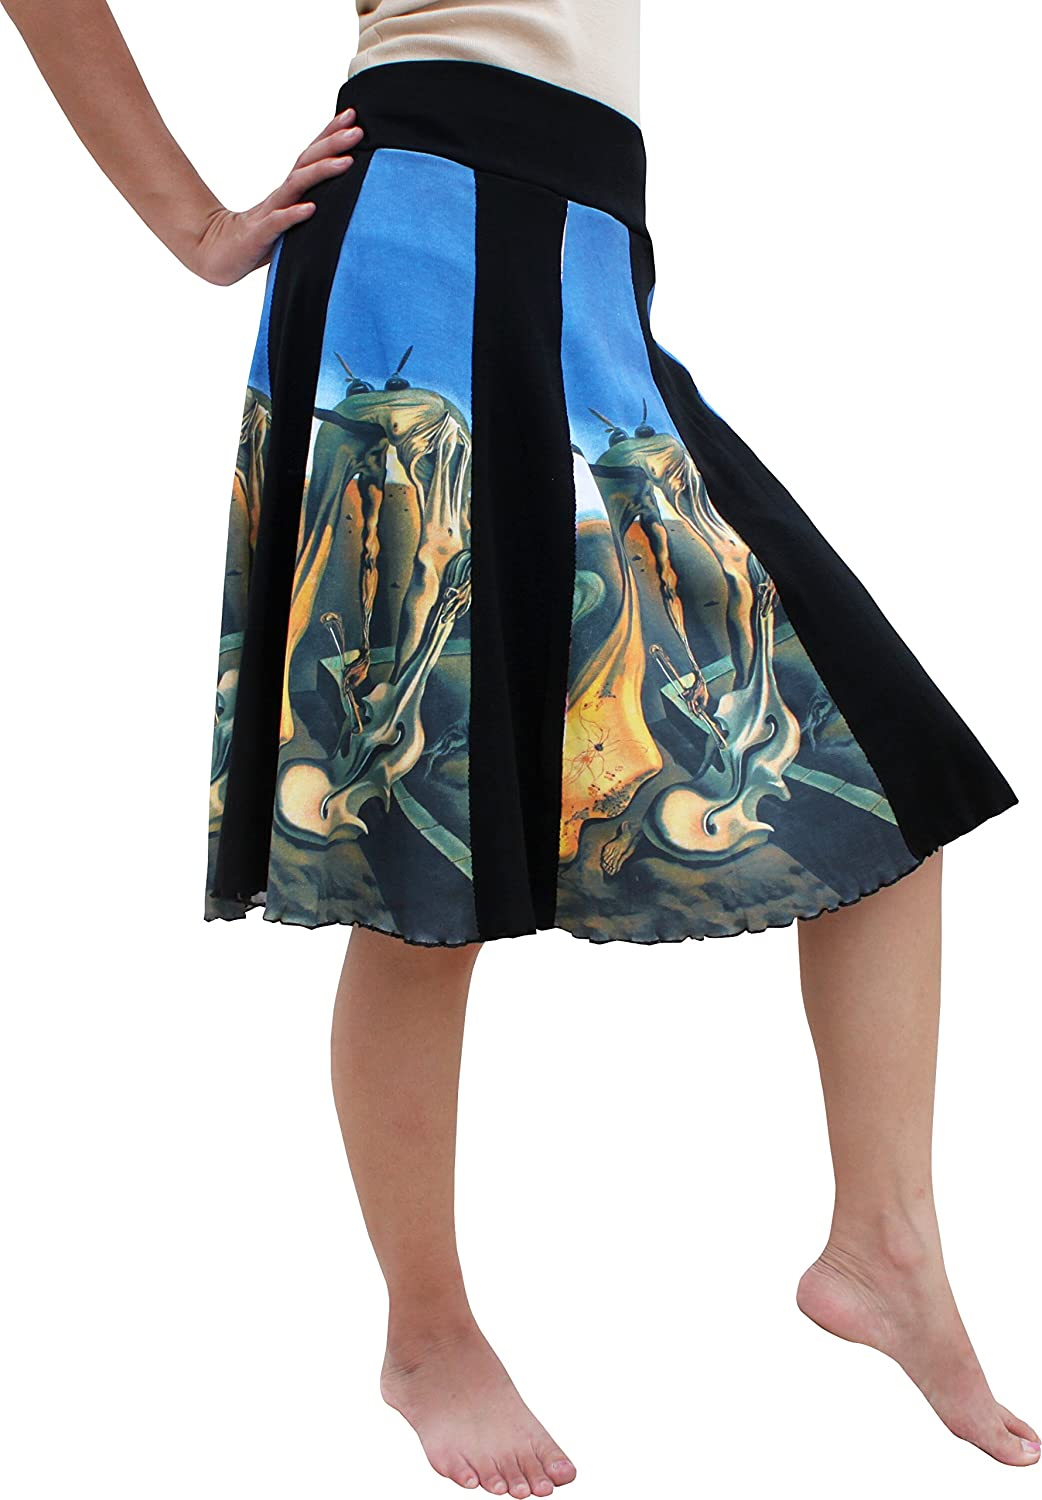 RaanPahMuang Salvador Dali Daddy Longlegs Knee Length Panel Skirt